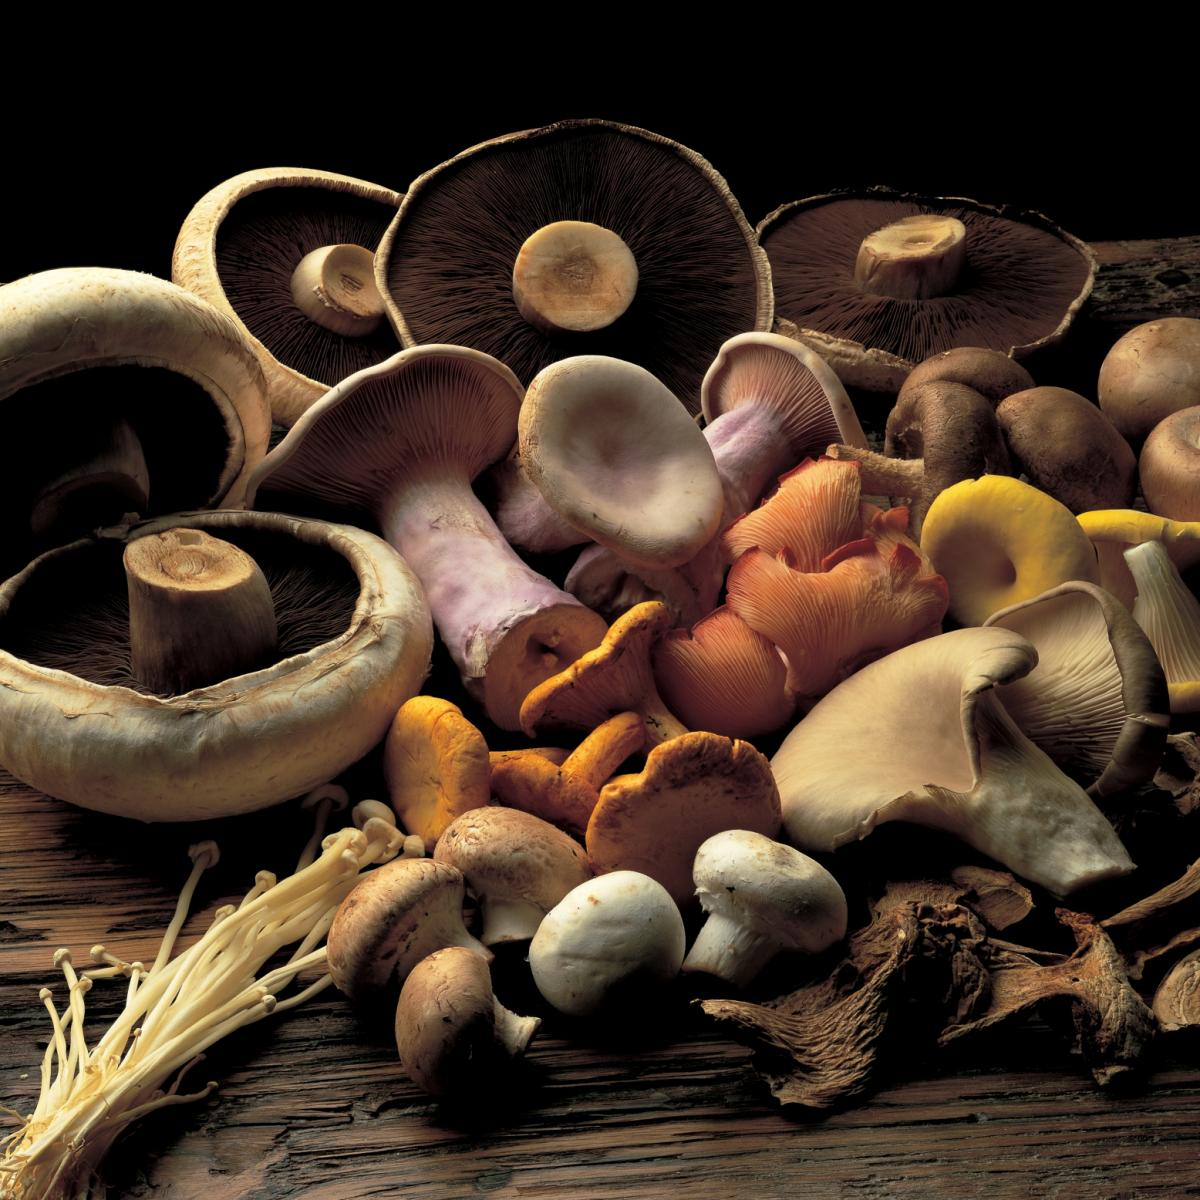 A picture of Delia's Marinated Mushrooms with Garlic and Smoked Pimentón Mayonnaise recipe